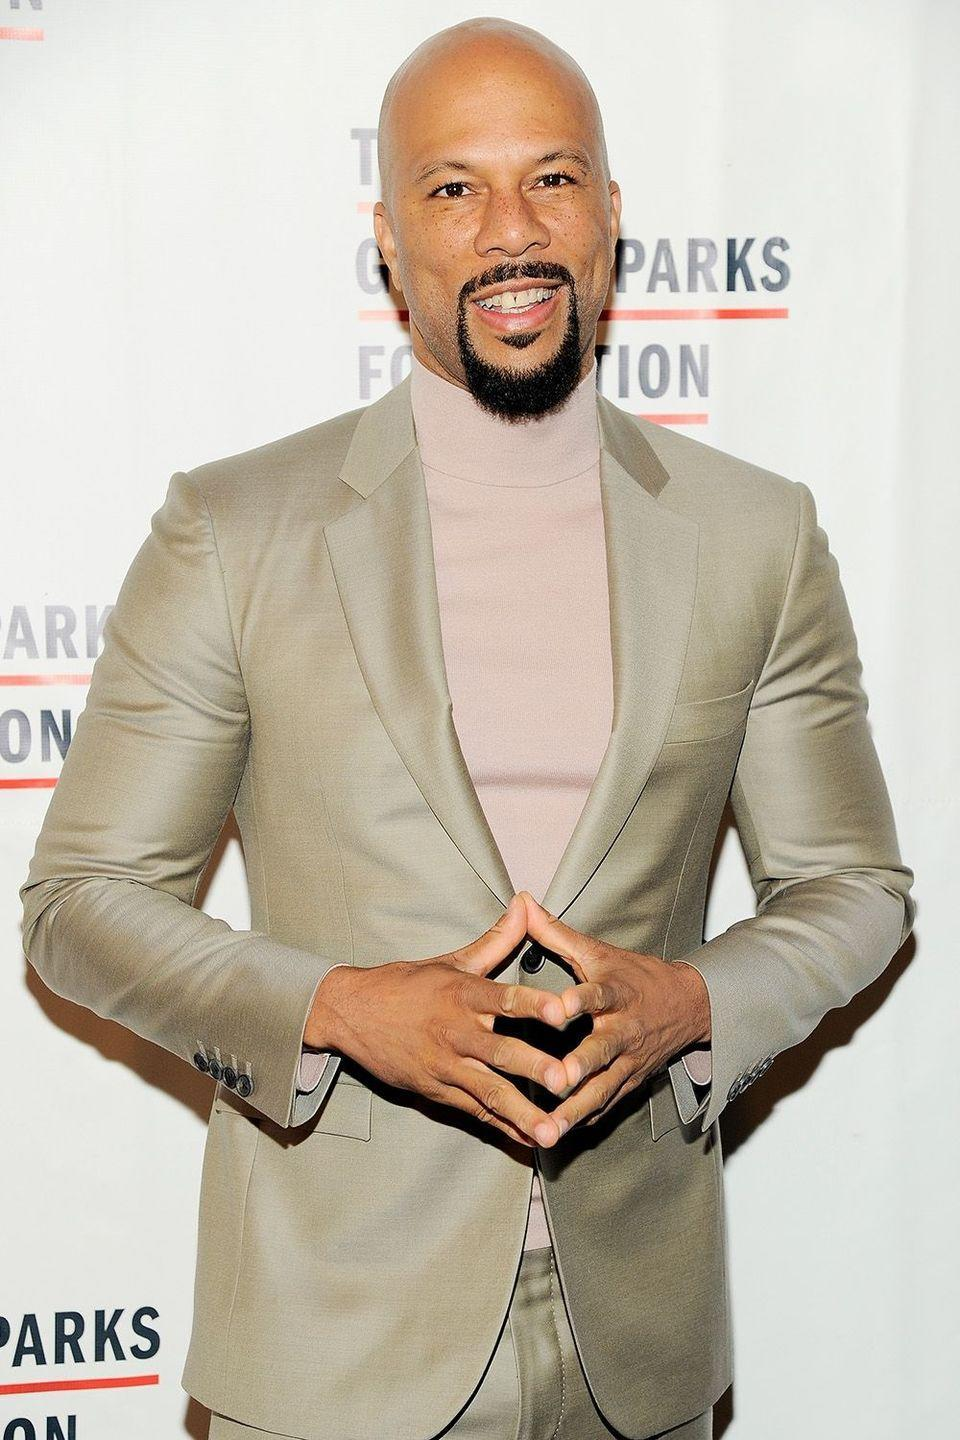 """<p>The famed rapper and now actor has been living the sober life for quite some time now, despite the temptations that come with living the stereotypical lifestyle of a rapper. </p><p><em>[h/t <a href=""""https://books.google.com/books?id=ziYEAAAAMBAJ&pg=PA108&lpg=PA108&dq=rapper+common+doesn%27t+drink+alcohol&source=bl&ots=vkv0SNR8ku&sig=Y53YZ5SMwE6jUouHbWiO6sXArHg&hl=en&sa=X&ved=0ahUKEwi8n42klb7VAhVBWCYKHc5dBgsQ6AEIcDAO#v=onepage&q&f=false"""" rel=""""nofollow noopener"""" target=""""_blank"""" data-ylk=""""slk:Vibe"""" class=""""link rapid-noclick-resp"""">Vibe</a></em></p>"""